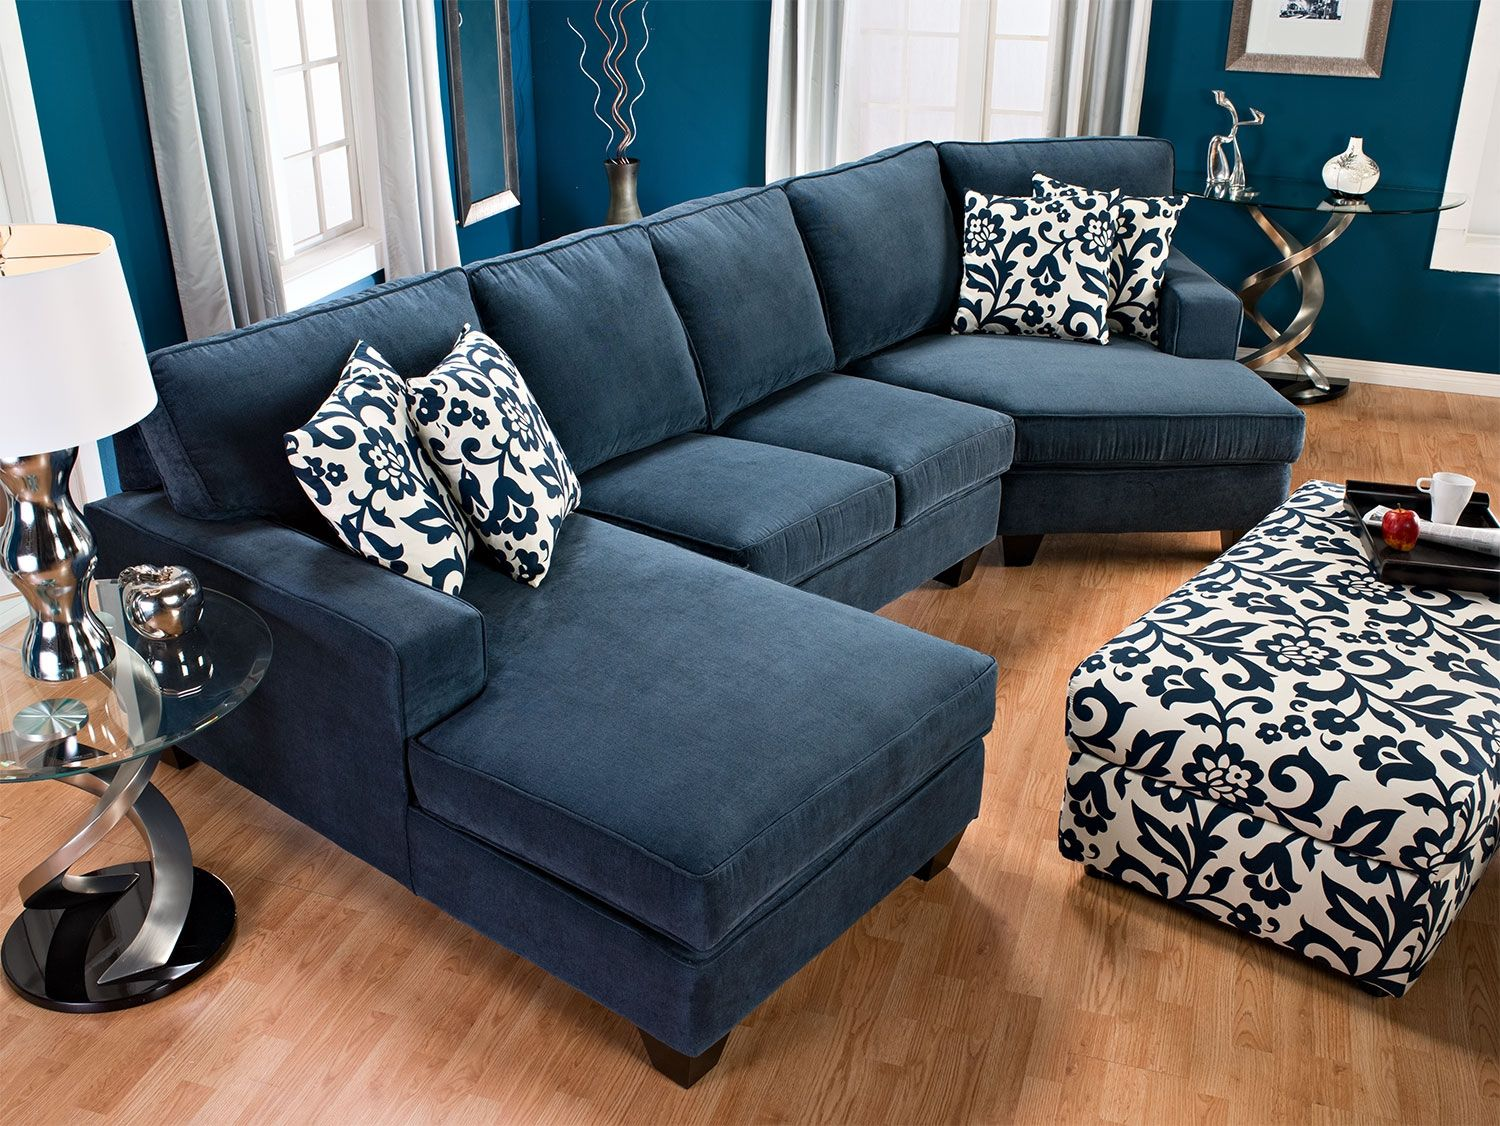 The Exact Couch We Want. Living Room Furniture   Dax Chenille Sectional  With Right Facing Cuddler   Indigo